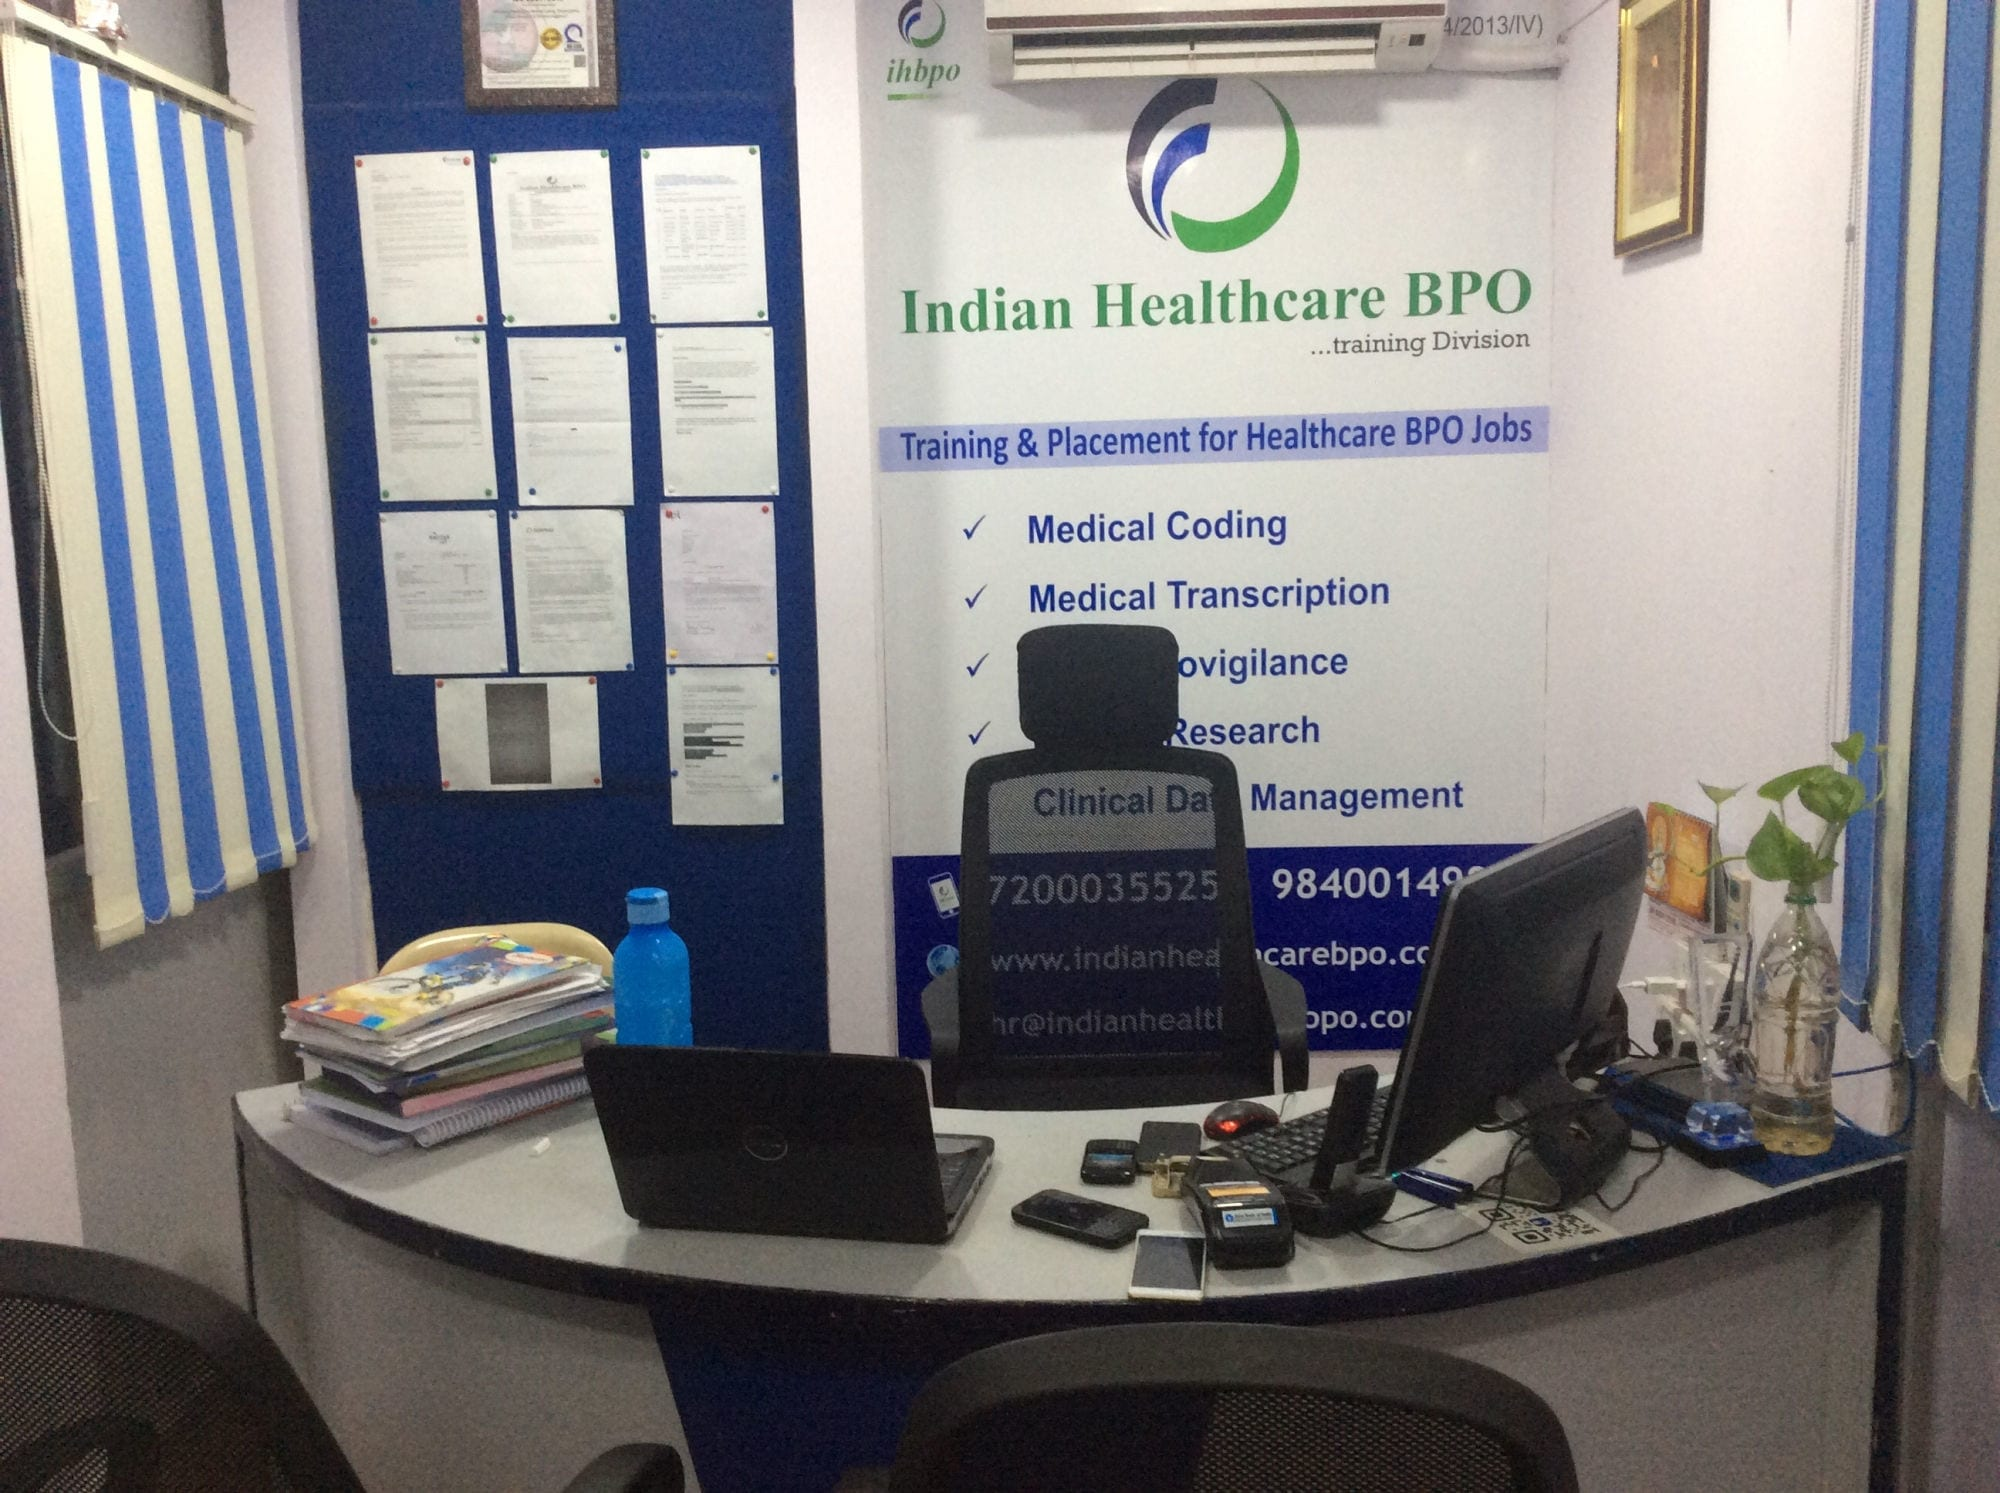 Jobs For Clinical Data Management In Bangalore